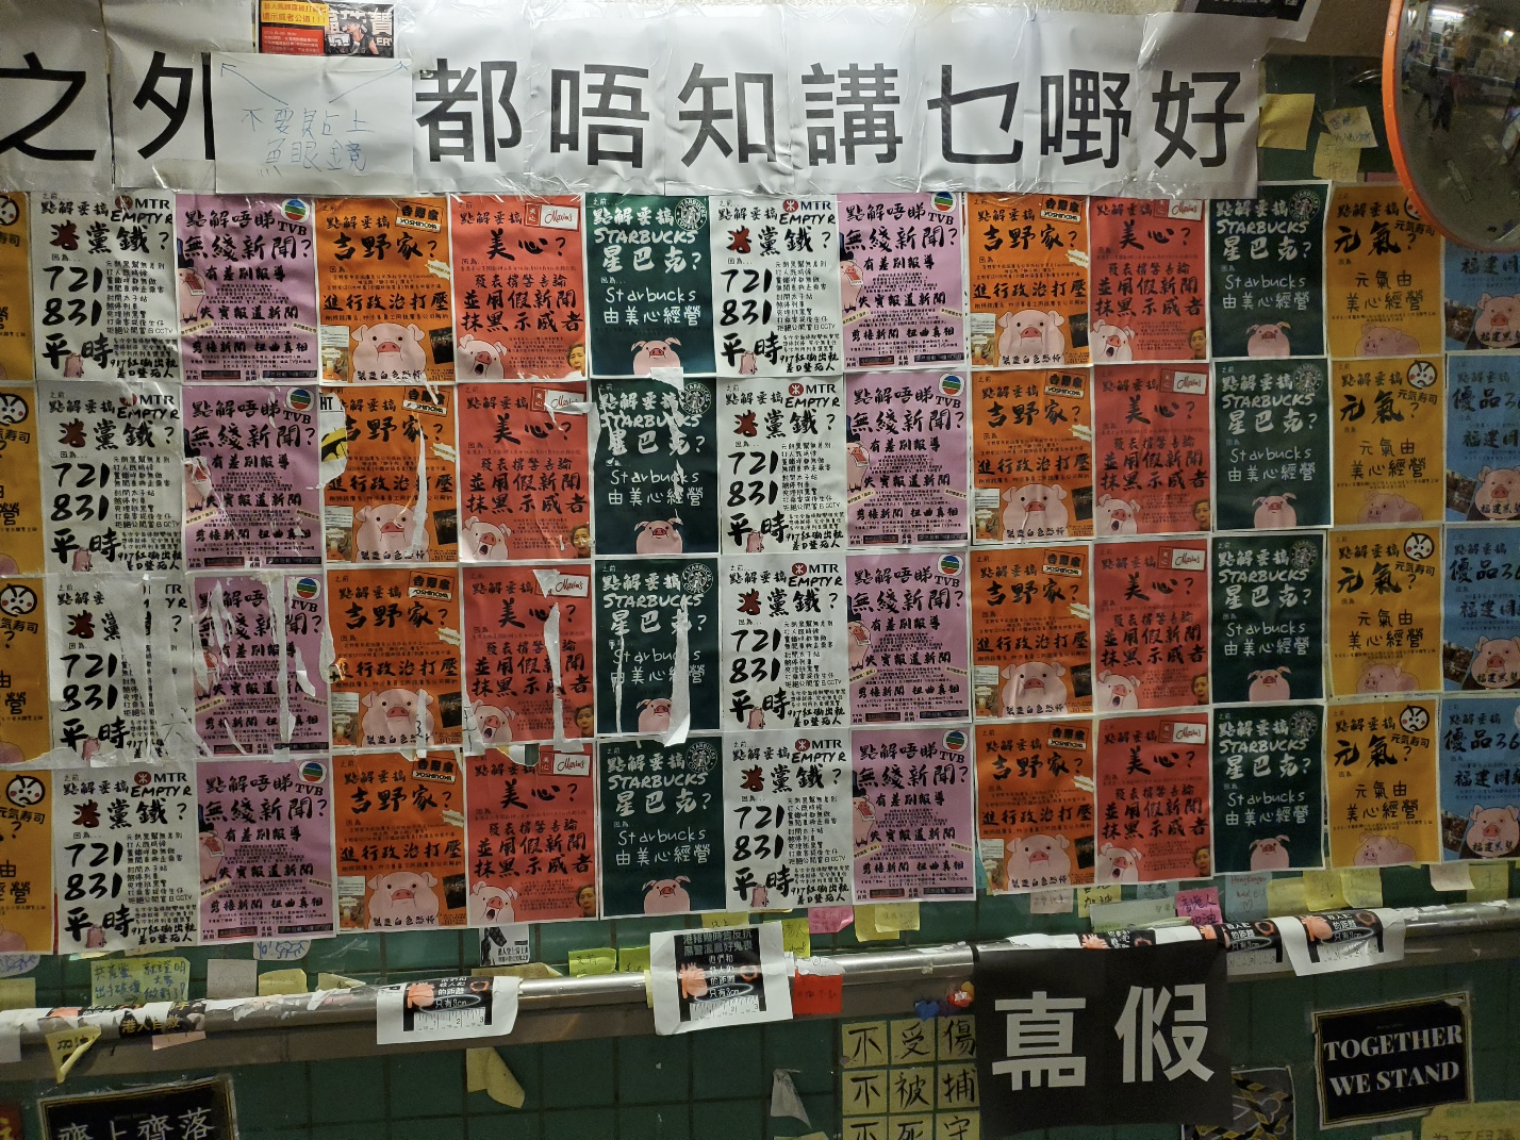 Colorful posters in the Tai Po Lennon Tunnel.